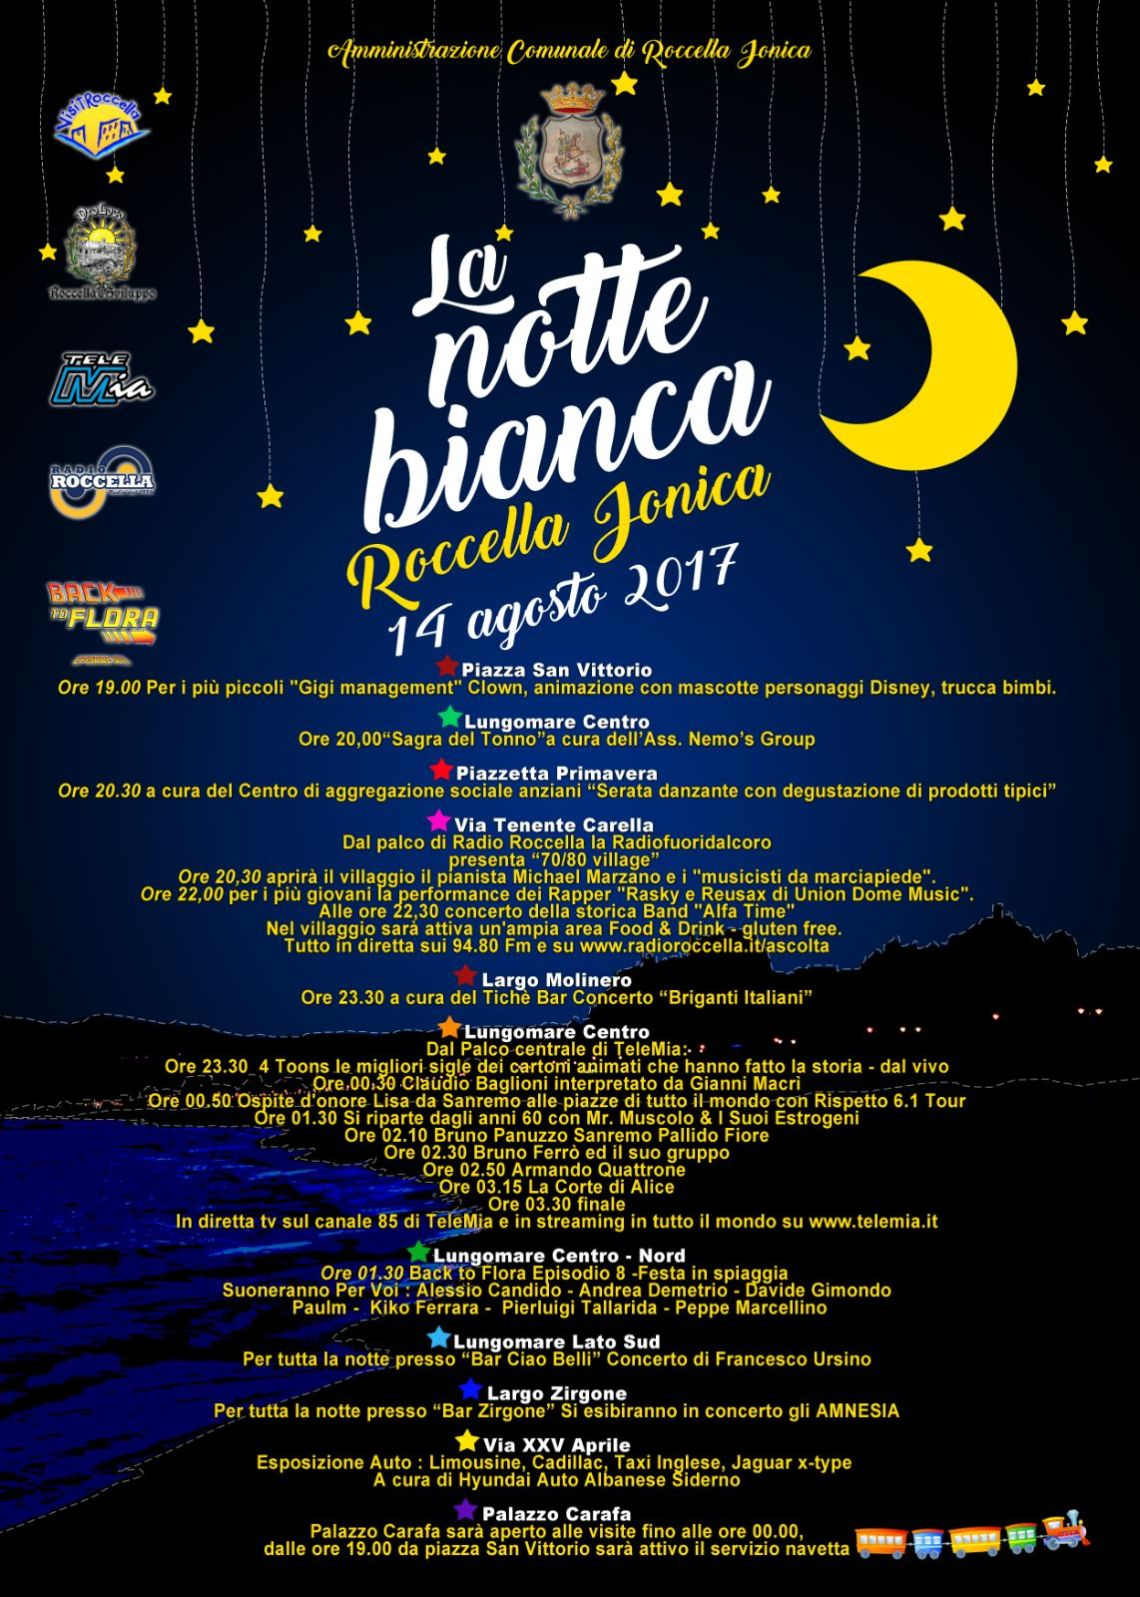 Roccella Notte Bianca 2017